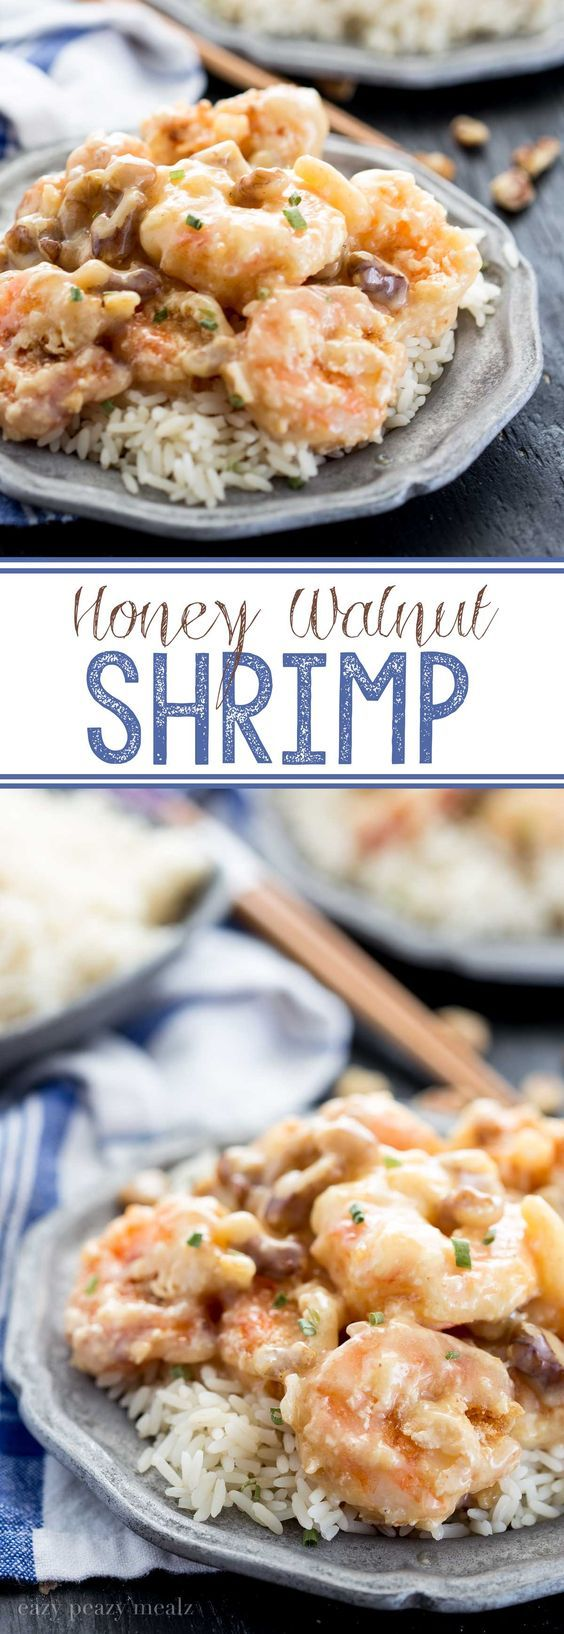 HONEY WALNUT SHRIMP Skip takeout and make this delicious and easy   shrimp at home. So easy, even the kids can help, and no sticky mess.